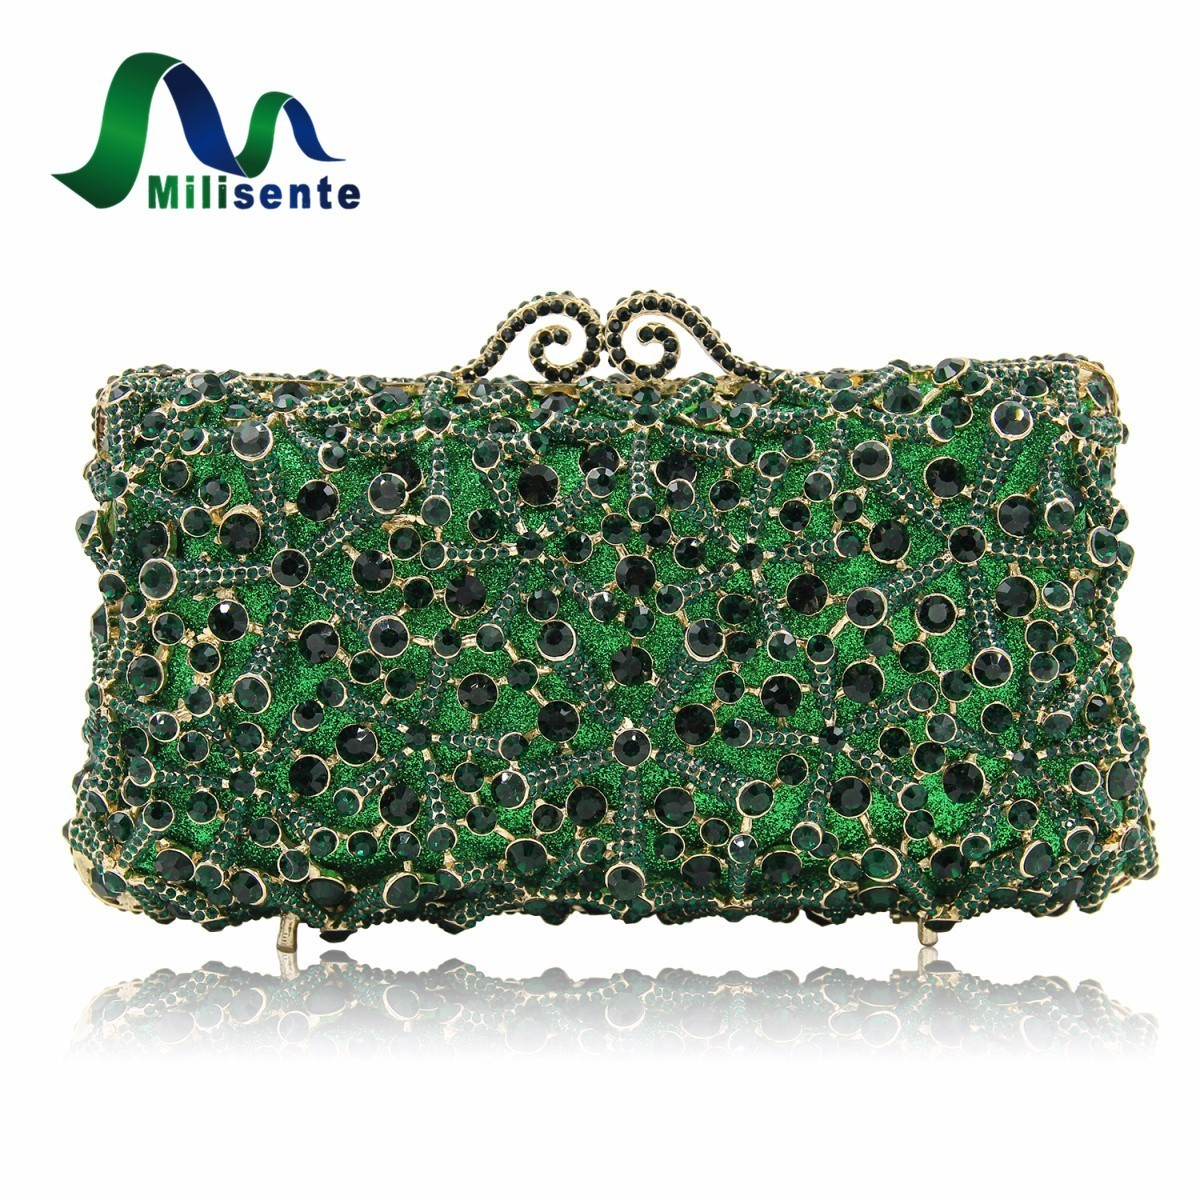 Milisente Fashion Flower Clutch Bags Full Crystal Clutches Women Silver Party Purse Ladies Wedding Bag With Long Chain free shipping a15 36 sky blue color fashion top crystal stones ring clutches bags for ladies nice party bag